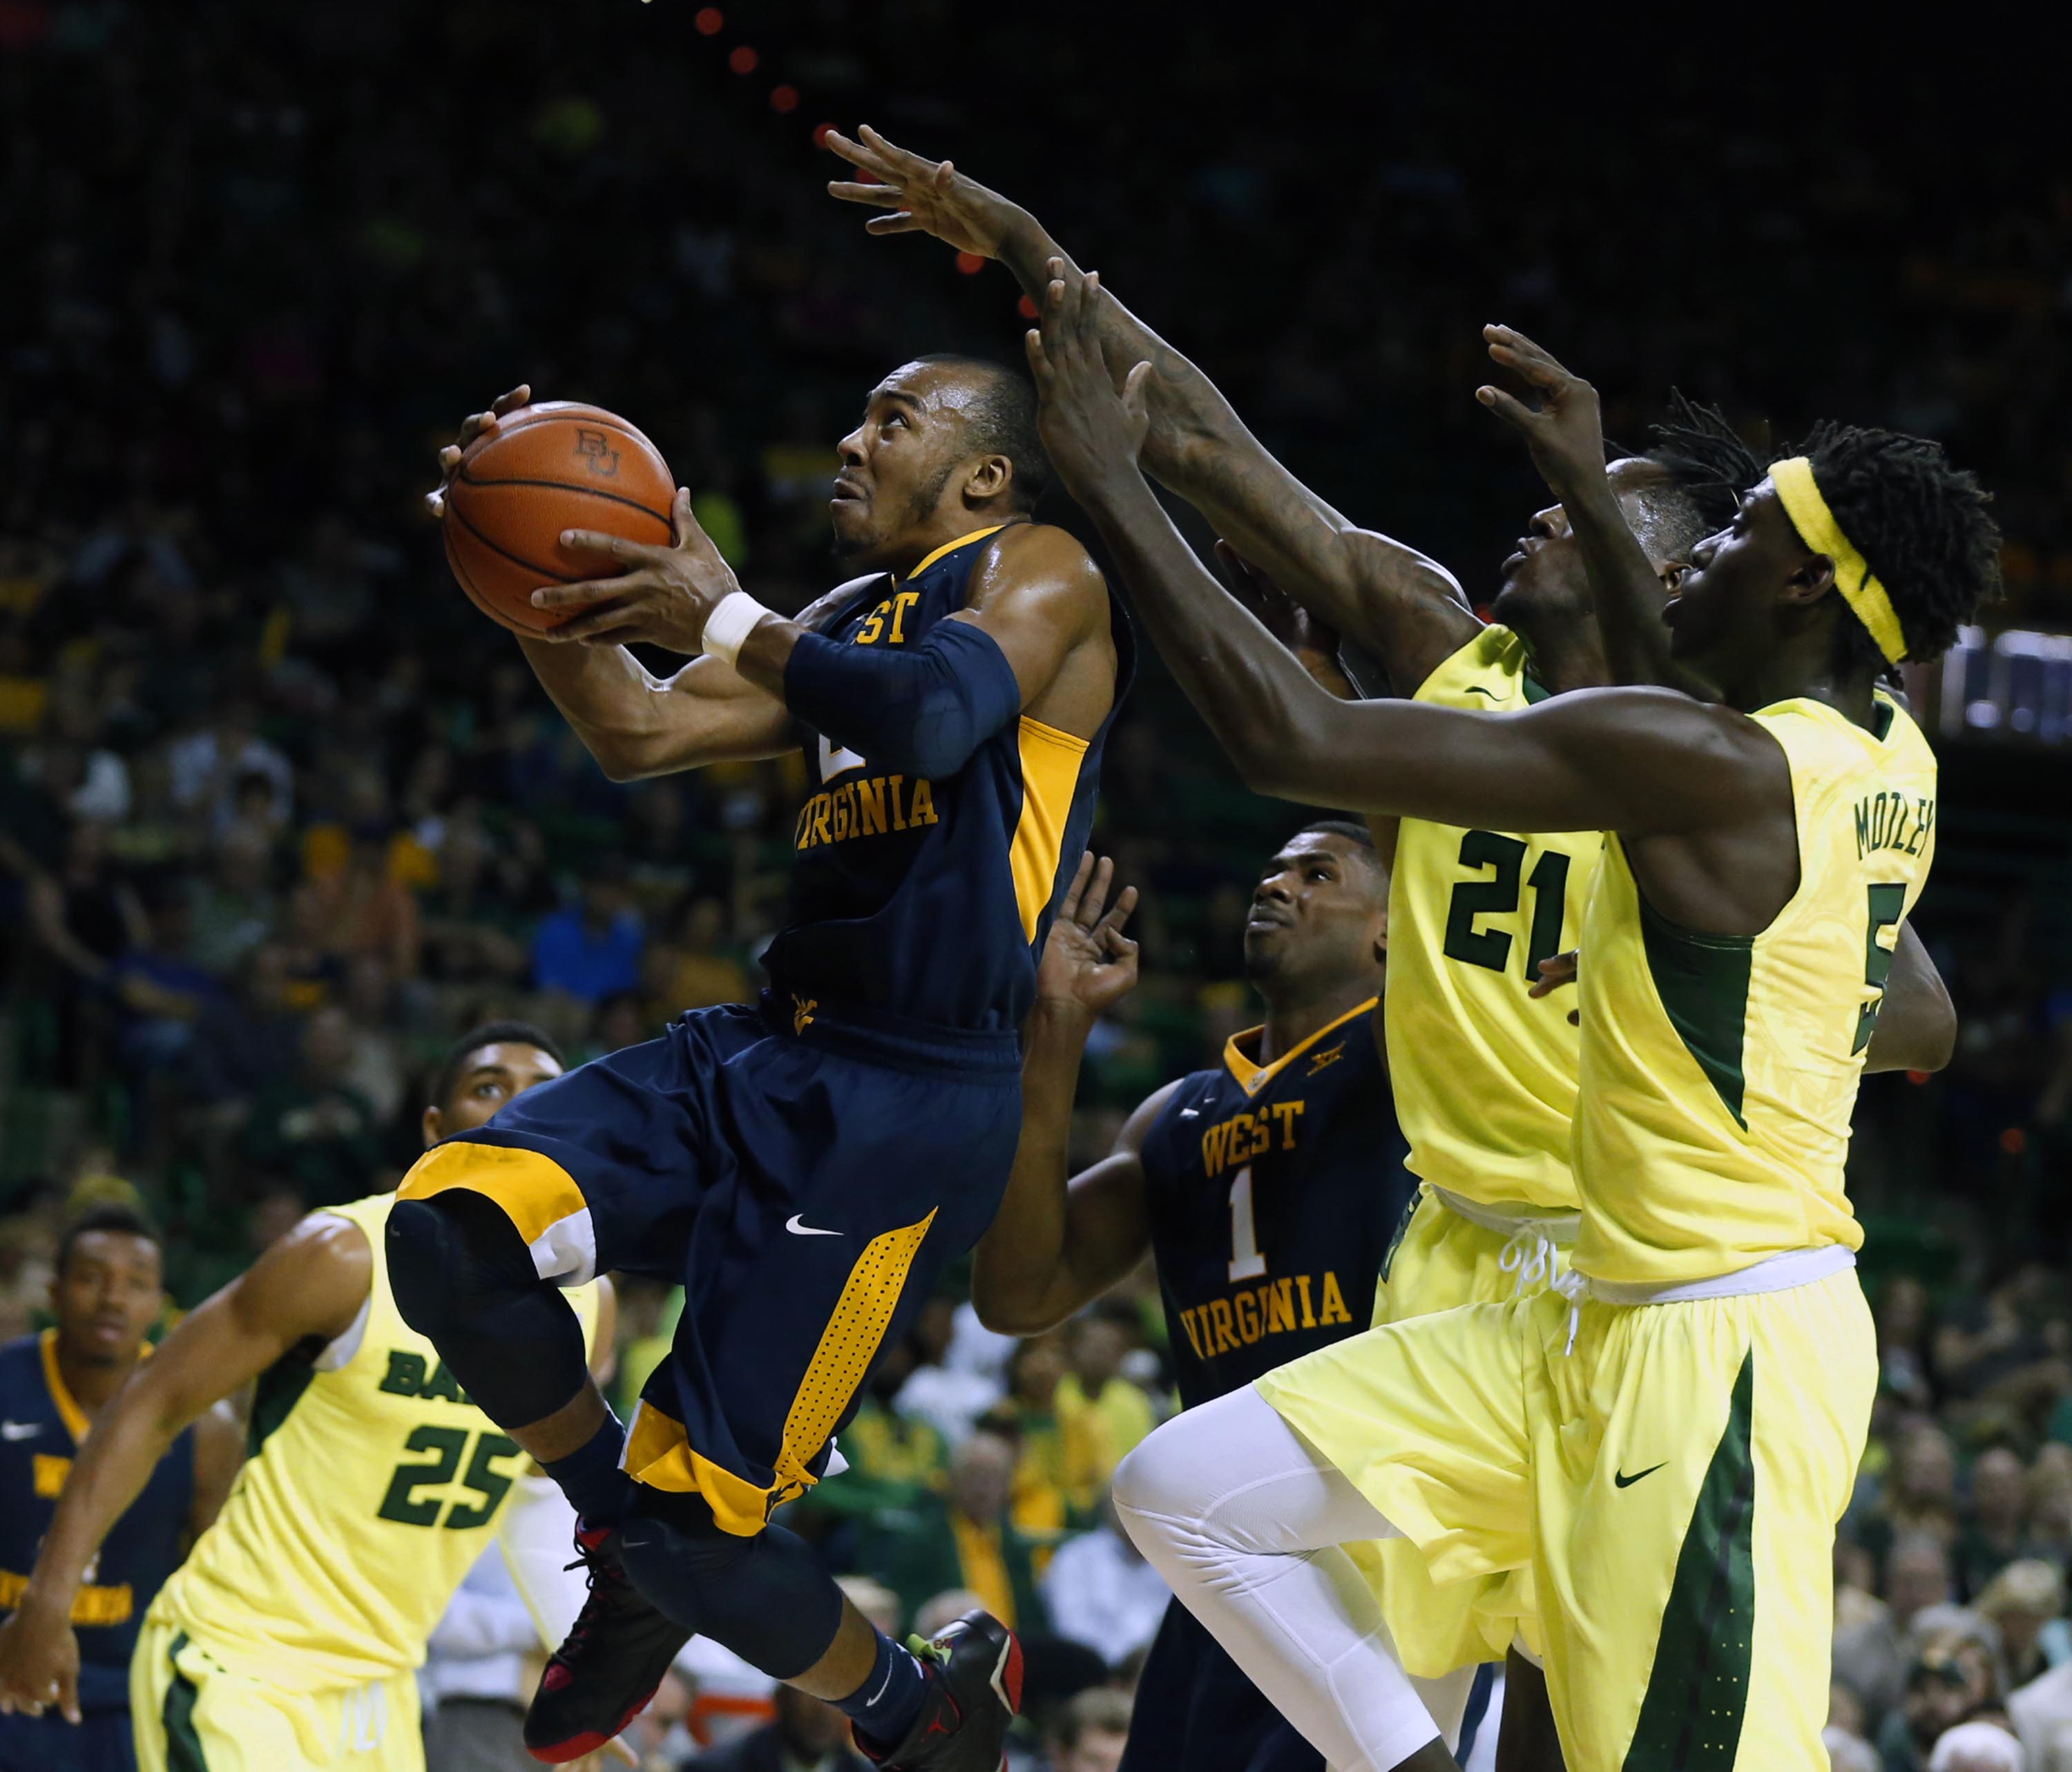 West Virginia guard Jevon Carter drives past Baylor forward Taurean Prince and forward Johnathan Motley, right,  in the first half of an NCAA college basketball game, Saturday, March 5, 2016, in Waco, Texas. (AP Photo/Rod Aydelotte)